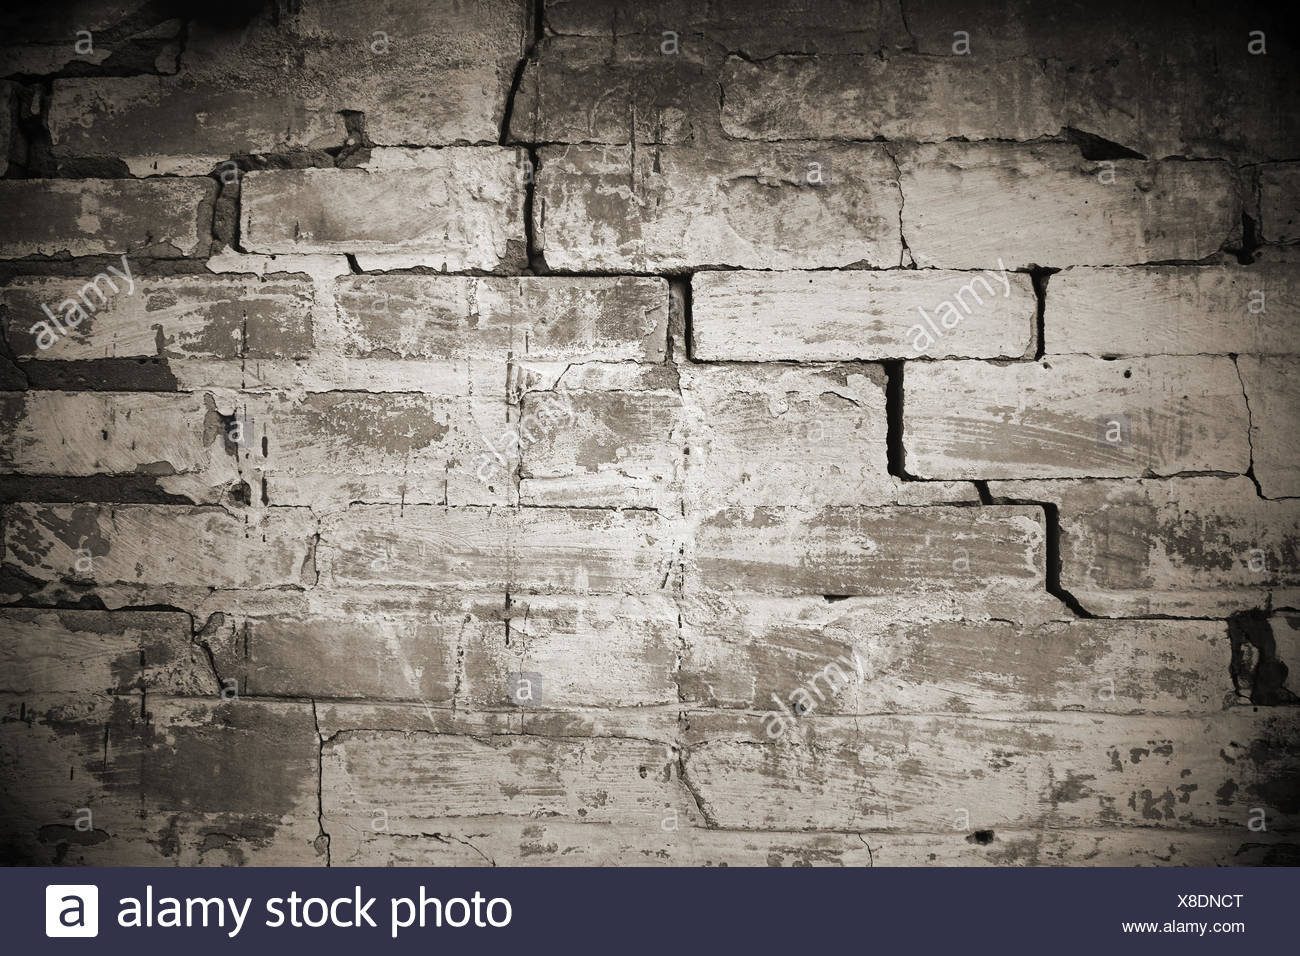 construction work stones old wall craftsman tradesman handicraftsman wall sandstone crannies masonry destruction trappings - Stock Image